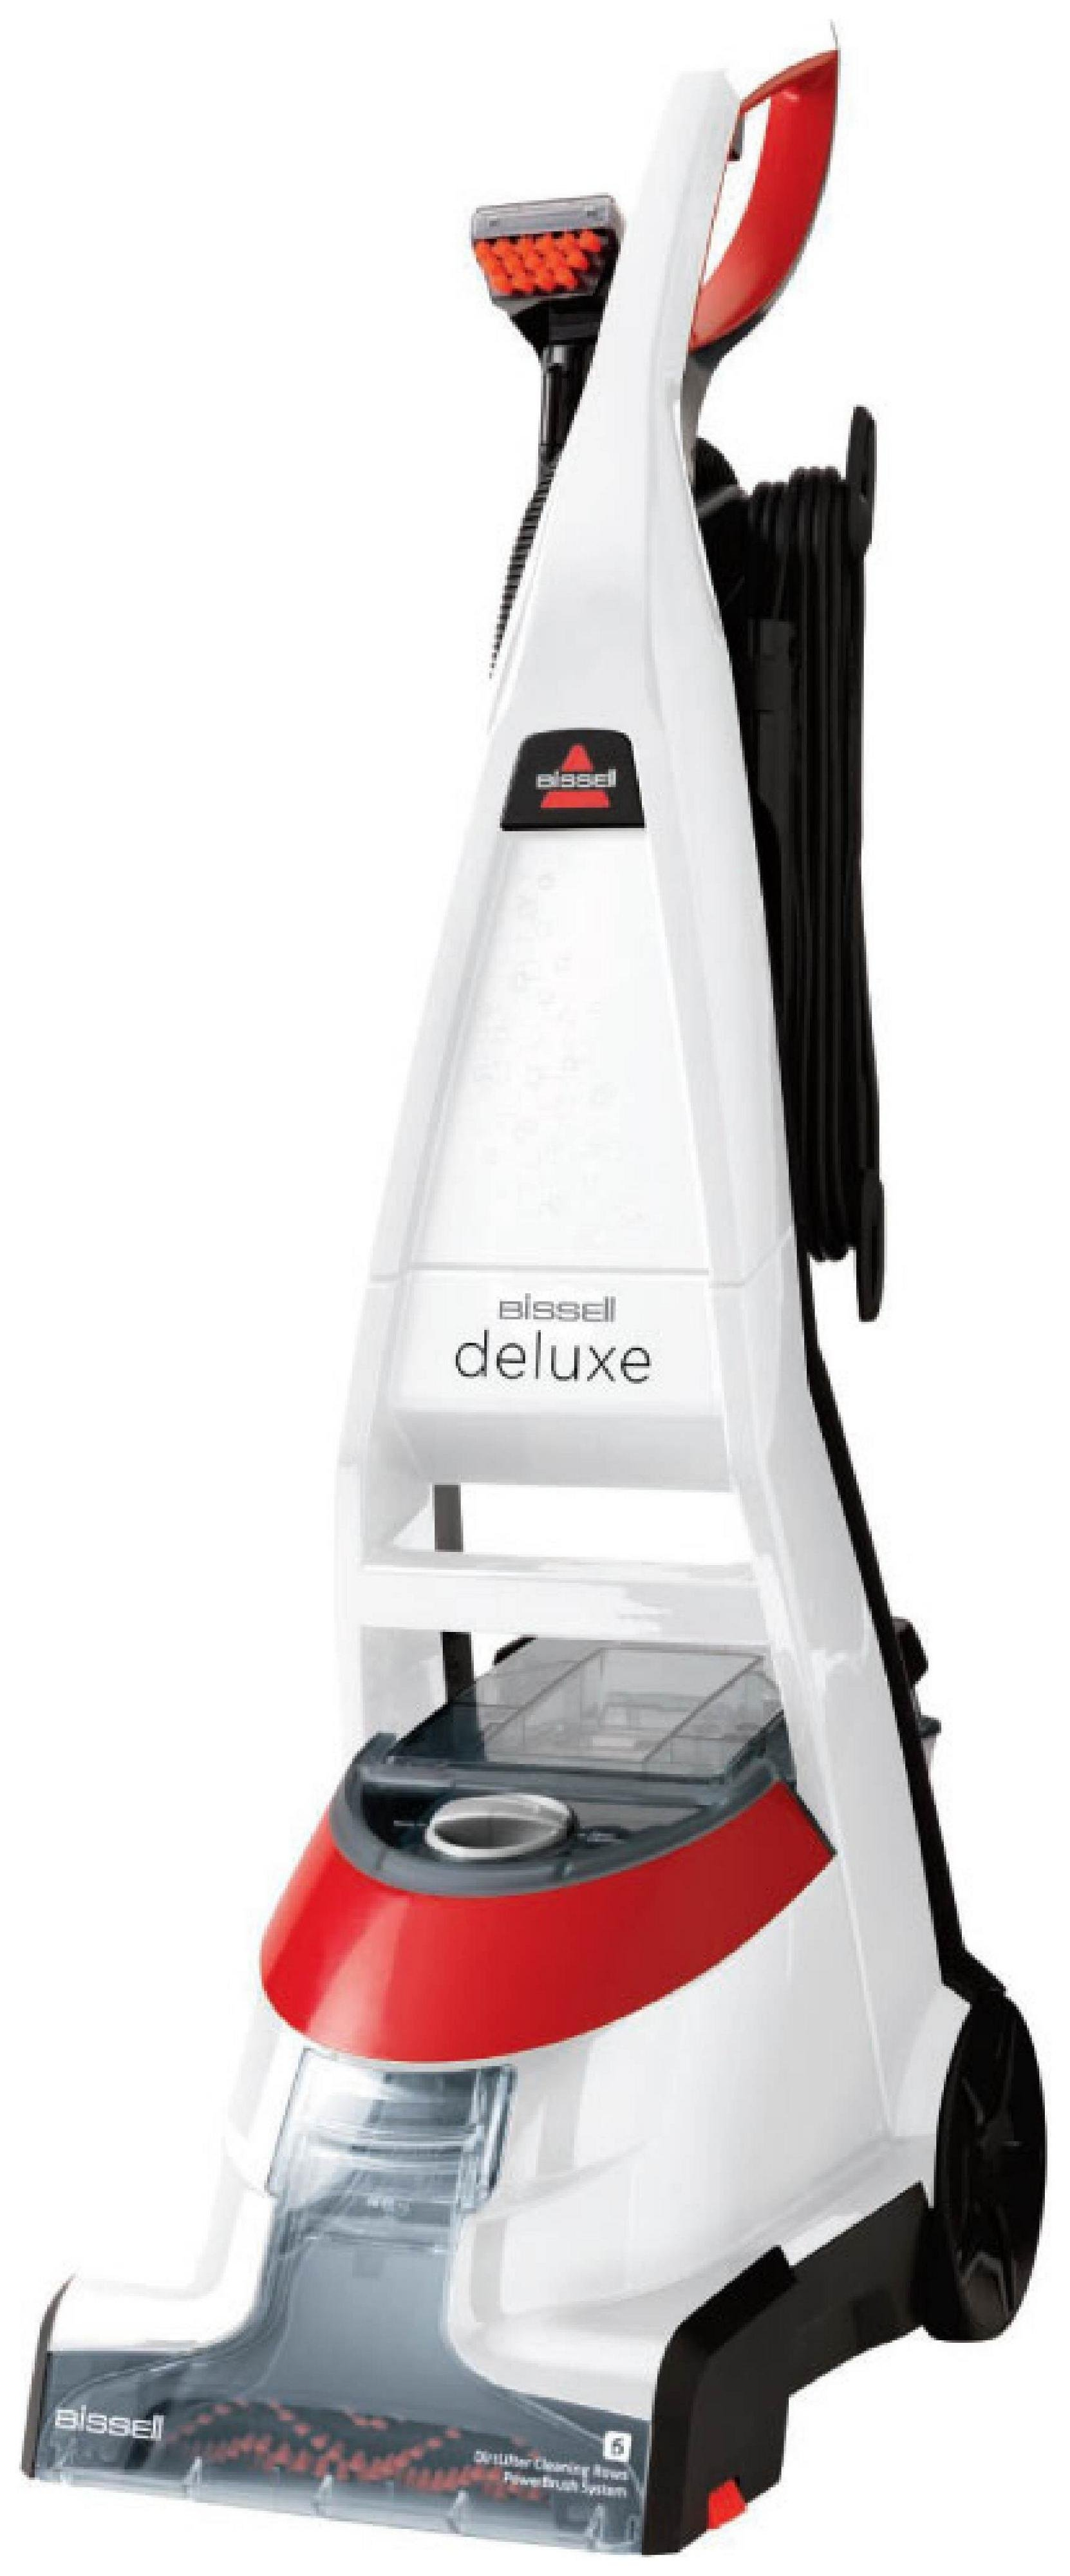 Image of Bissell - 32782 DeepClean Deluxe Upright - Carpet Cleaner